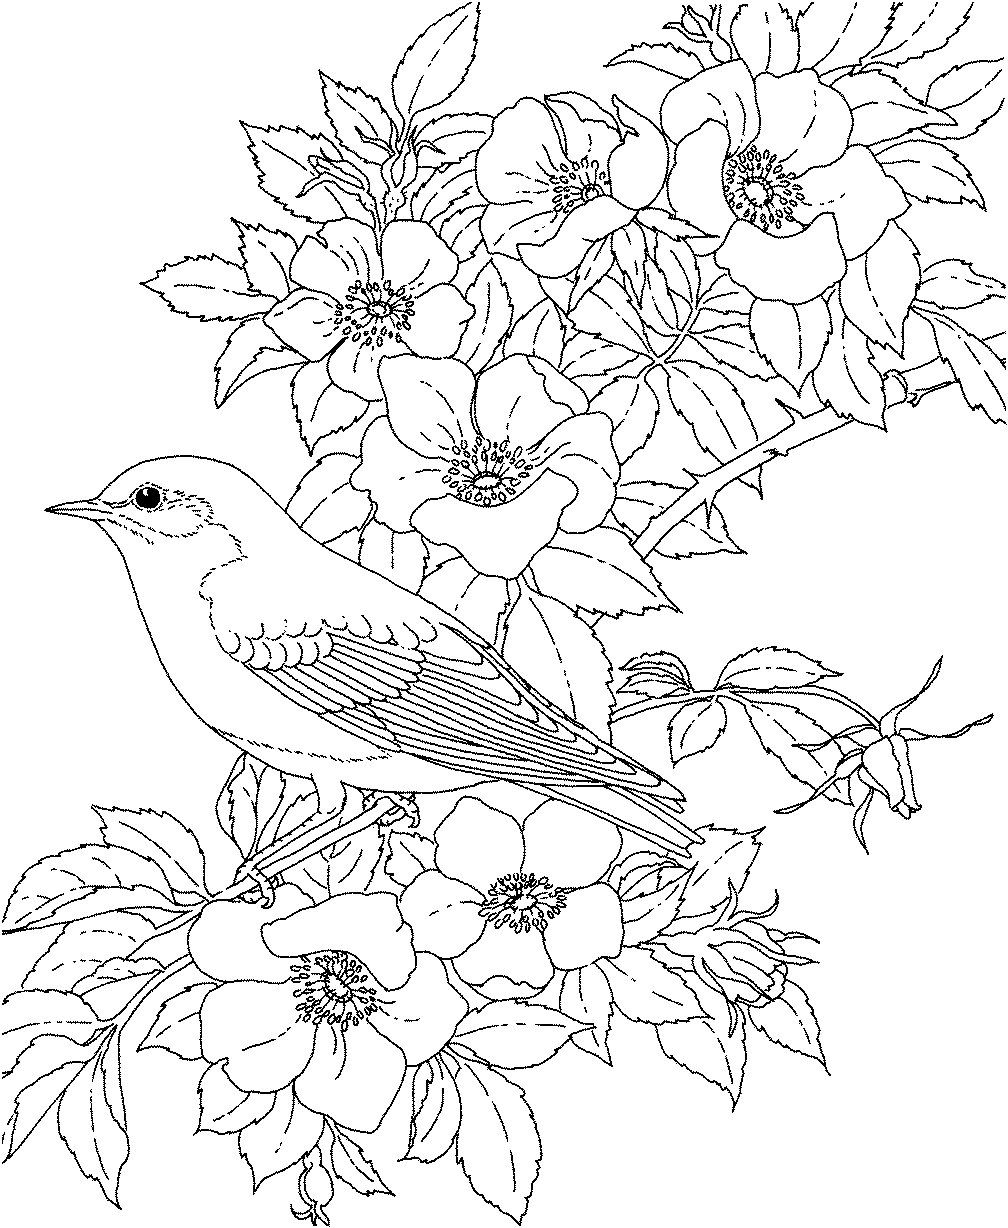 Flower coloring pages for adults - 3 Bird Coloring Pages Downloadable Printable Blue By Naturepoet 2 00 Flower Coloring Pagesadult